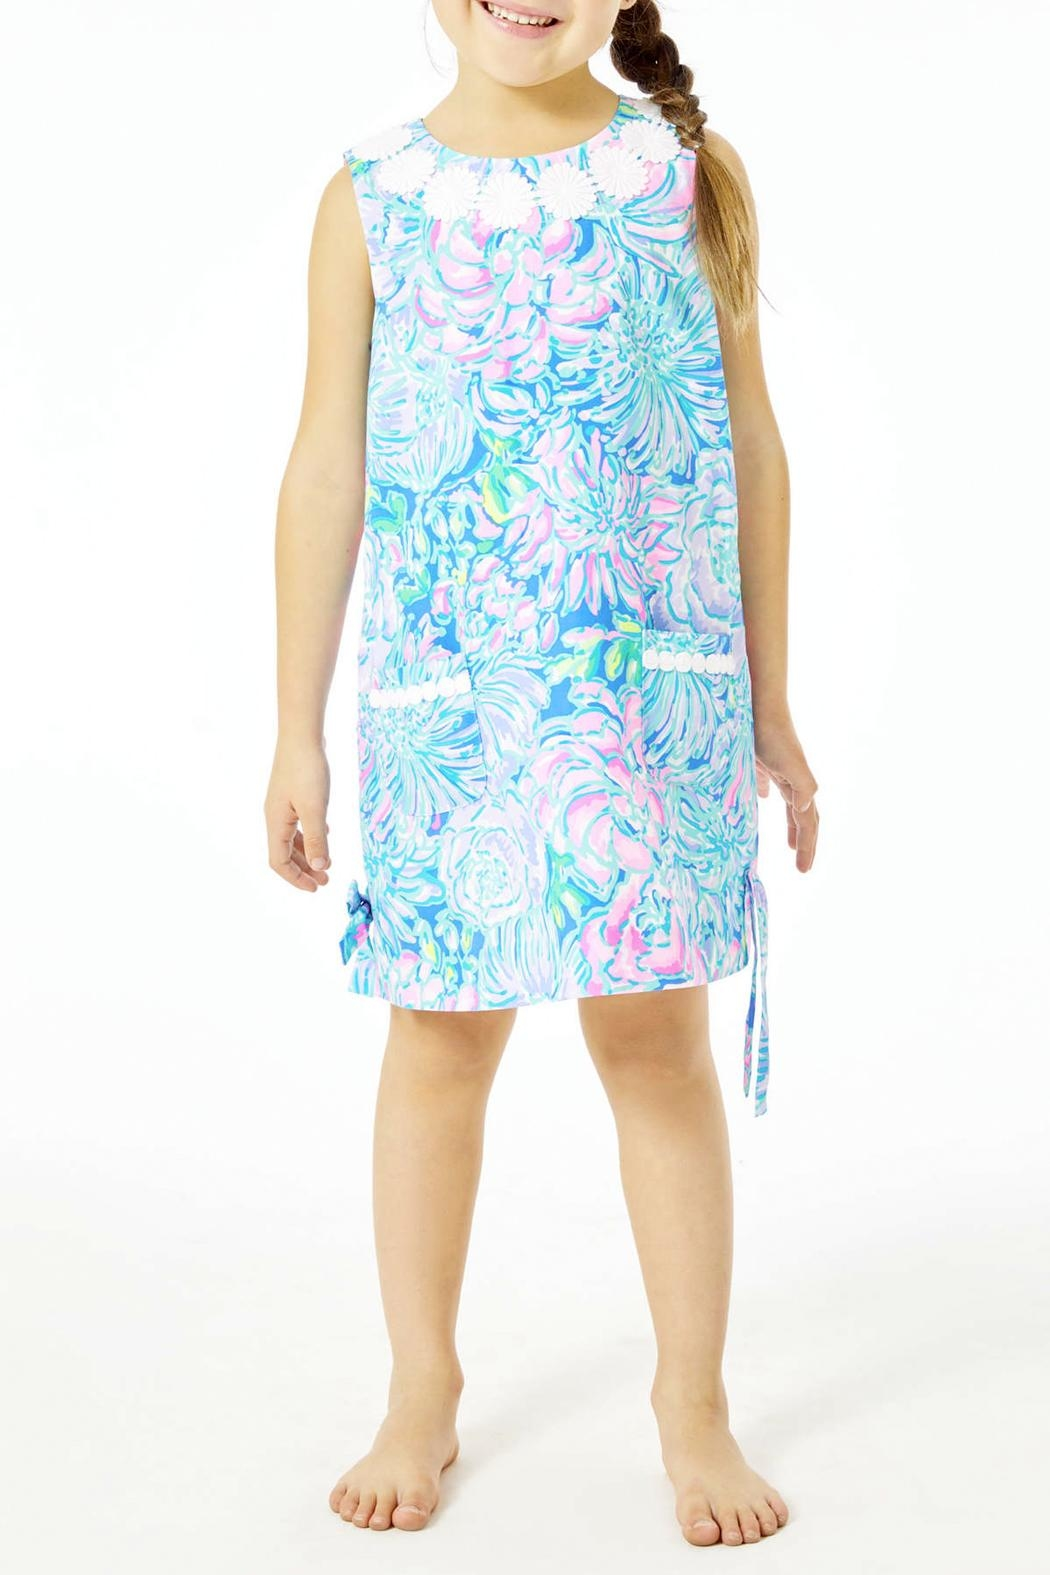 Lilly Pulitzer Little-Lilly Classic Shift - Main Image